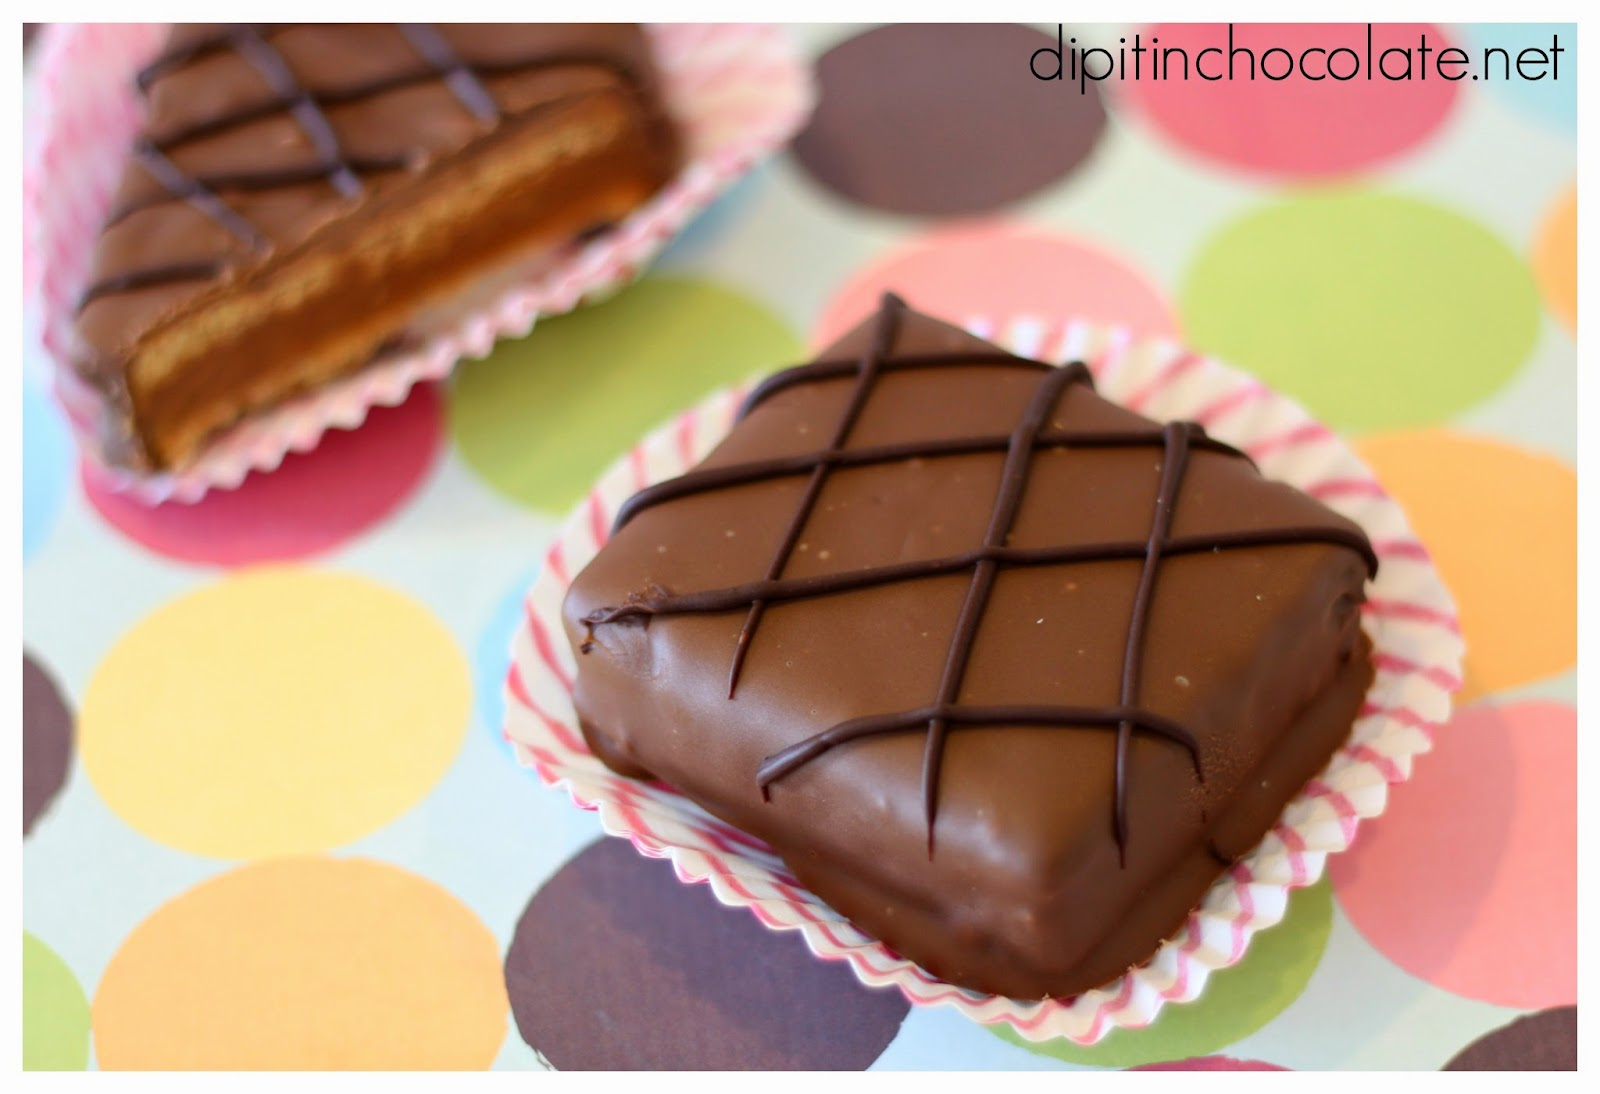 ... Corner Peanut Butter Chocolate-dipped Sandwiches ~ Dip it in Chocolate